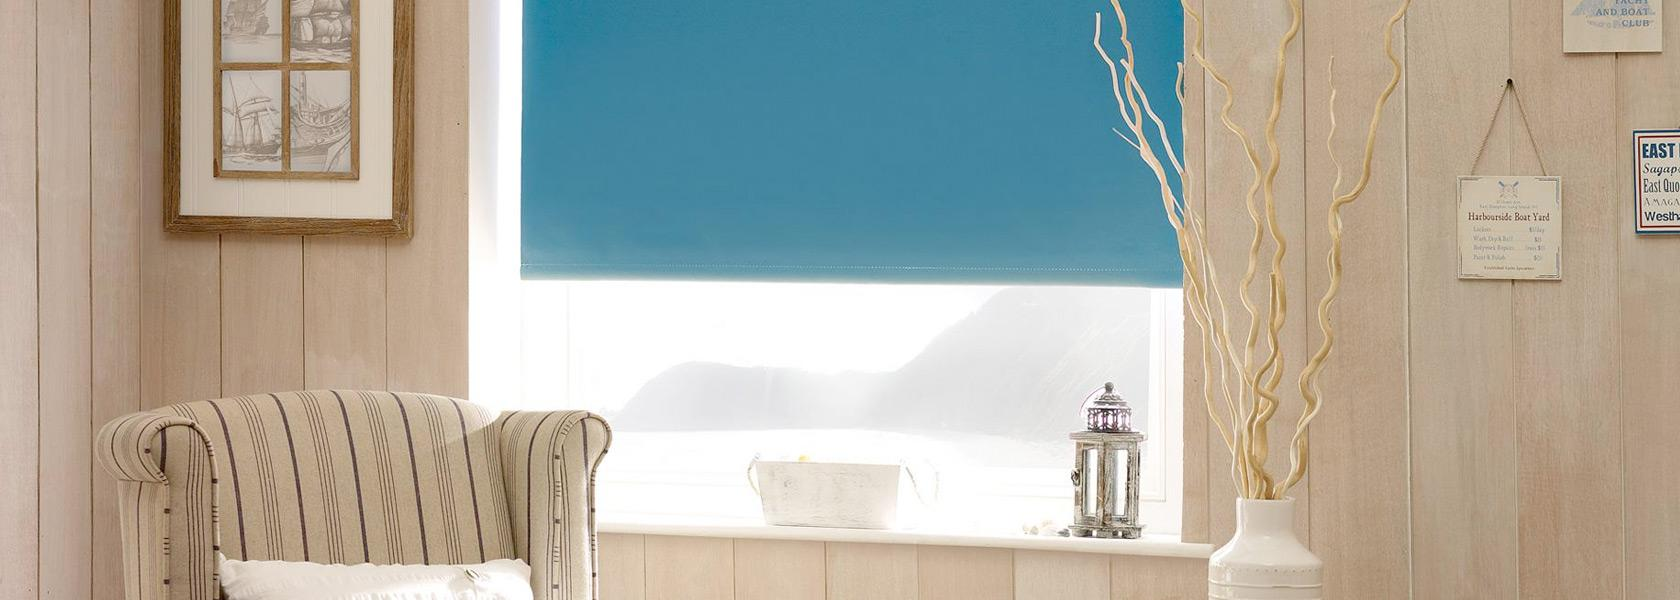 buying guide 08 measure blinds